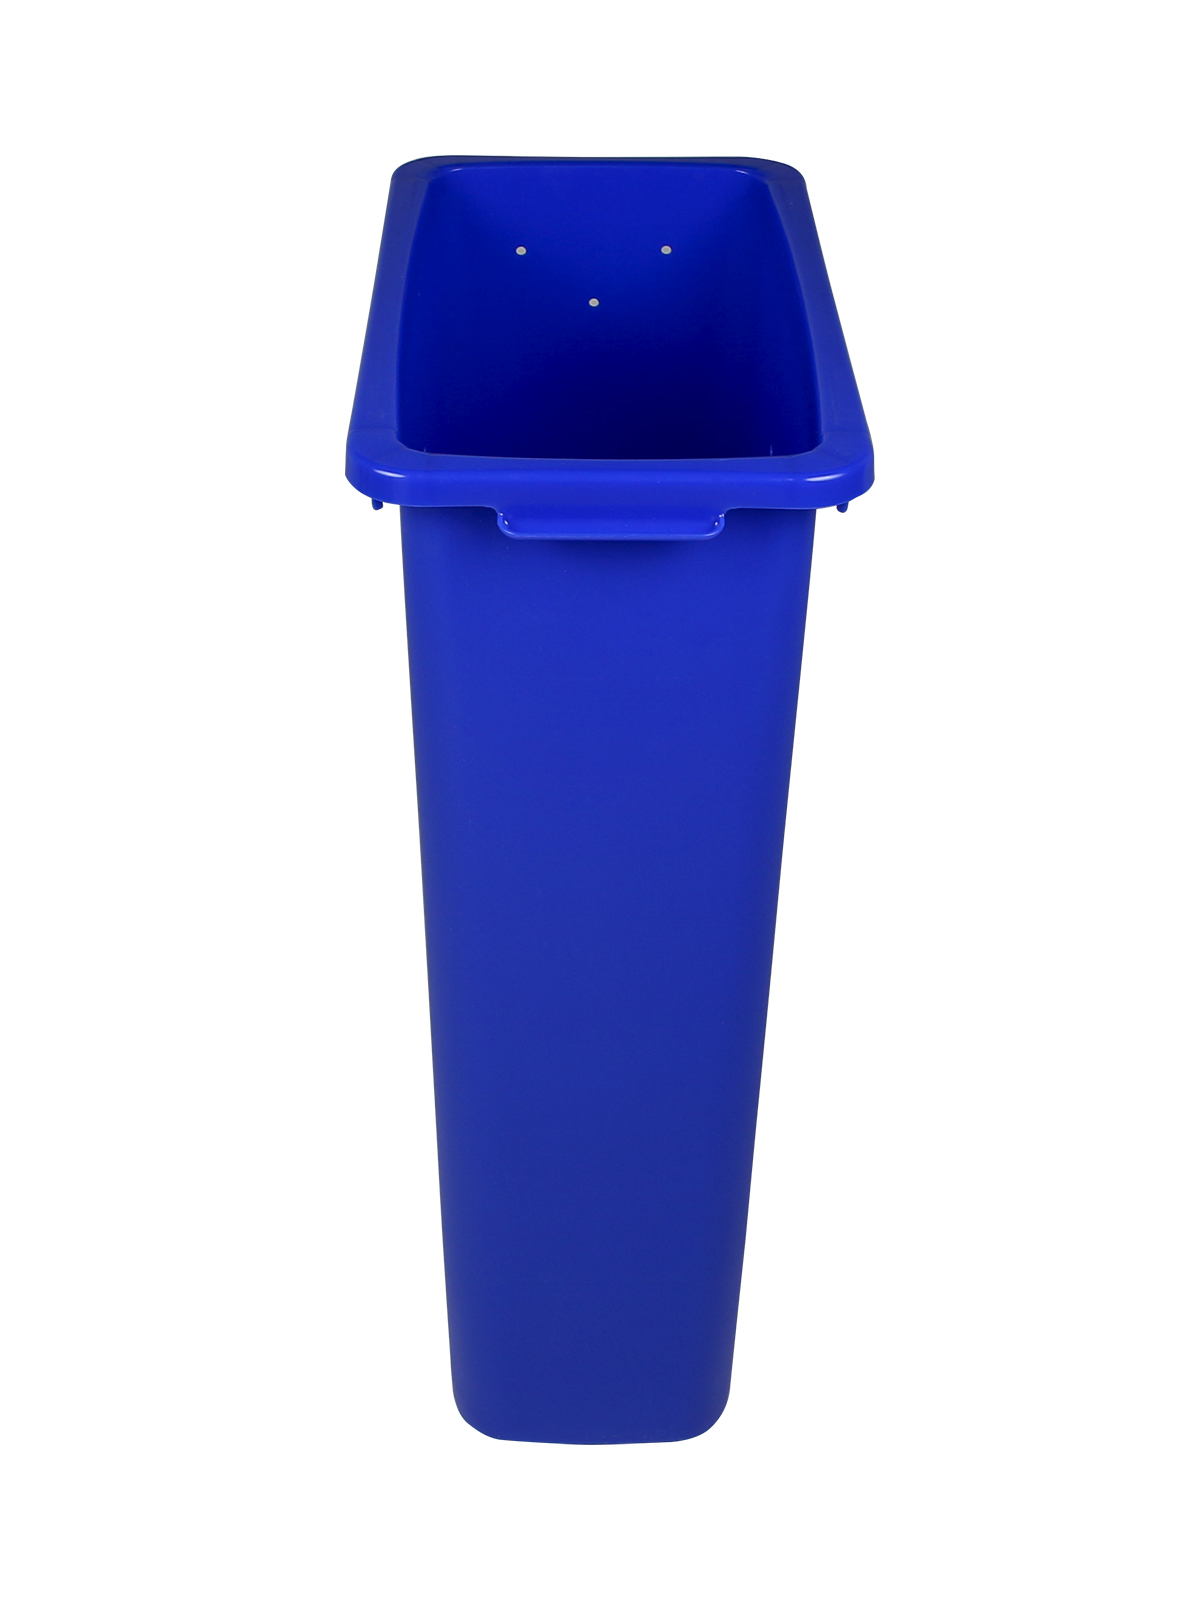 WASTE WATCHER - Single - Body - 24 - Mobius Loop - Royal Blue